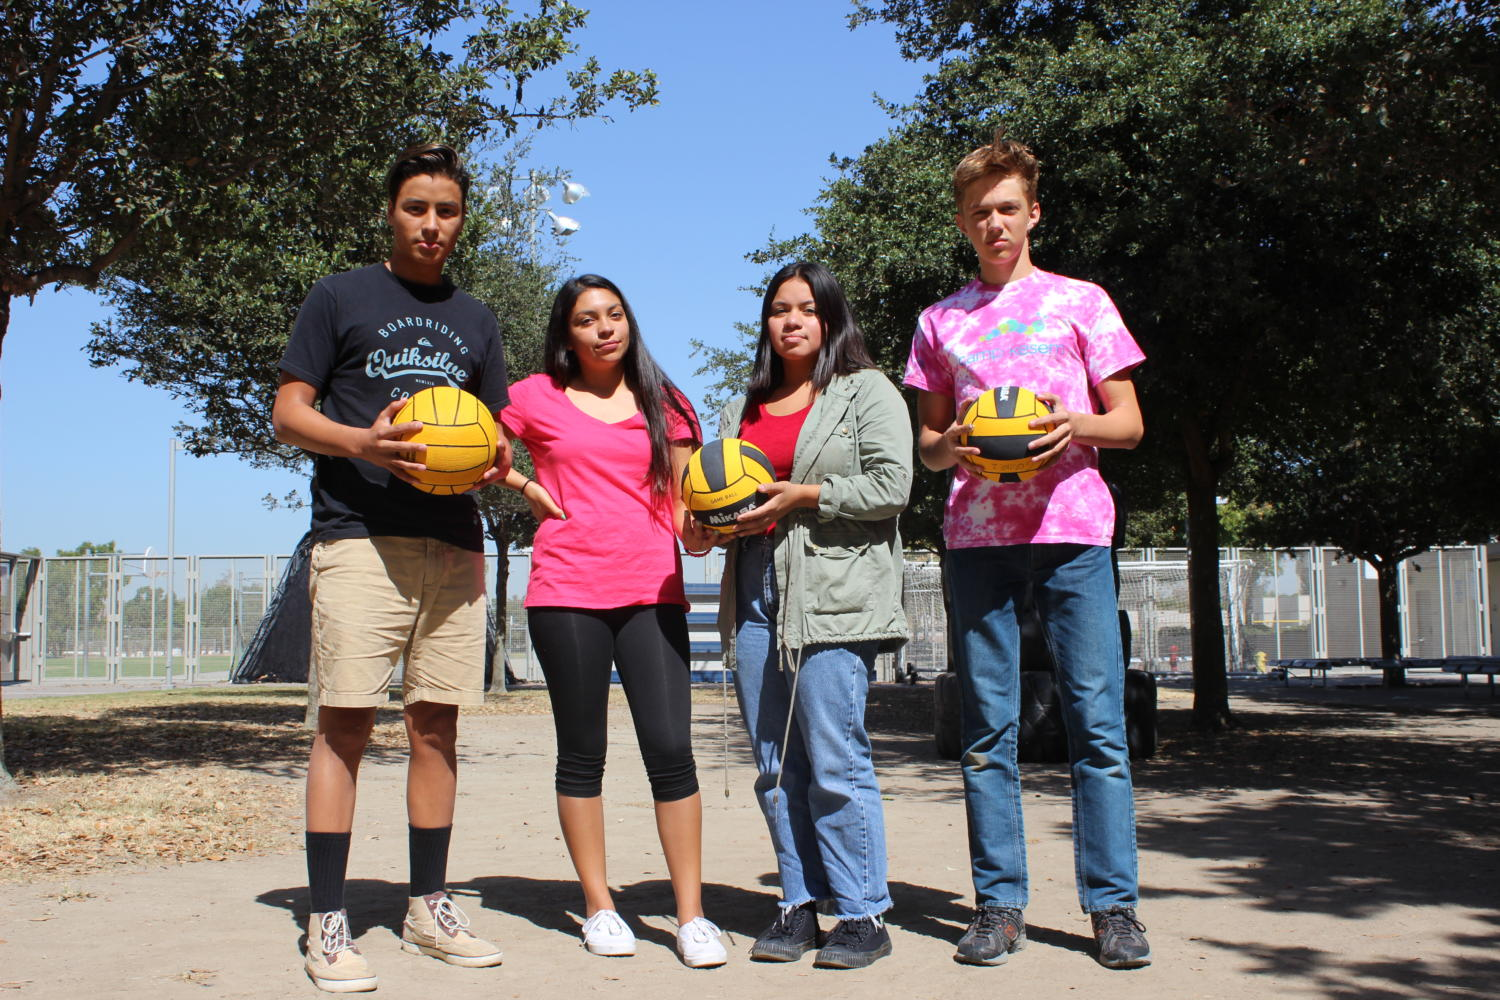 From left: Varsity waterpolo captain Anthony Sanchez, water polo players Andrea Muniz, Paulina Calderon and JV waterpolo captain William Feuerborn hope to see the area behind them built into a pool.